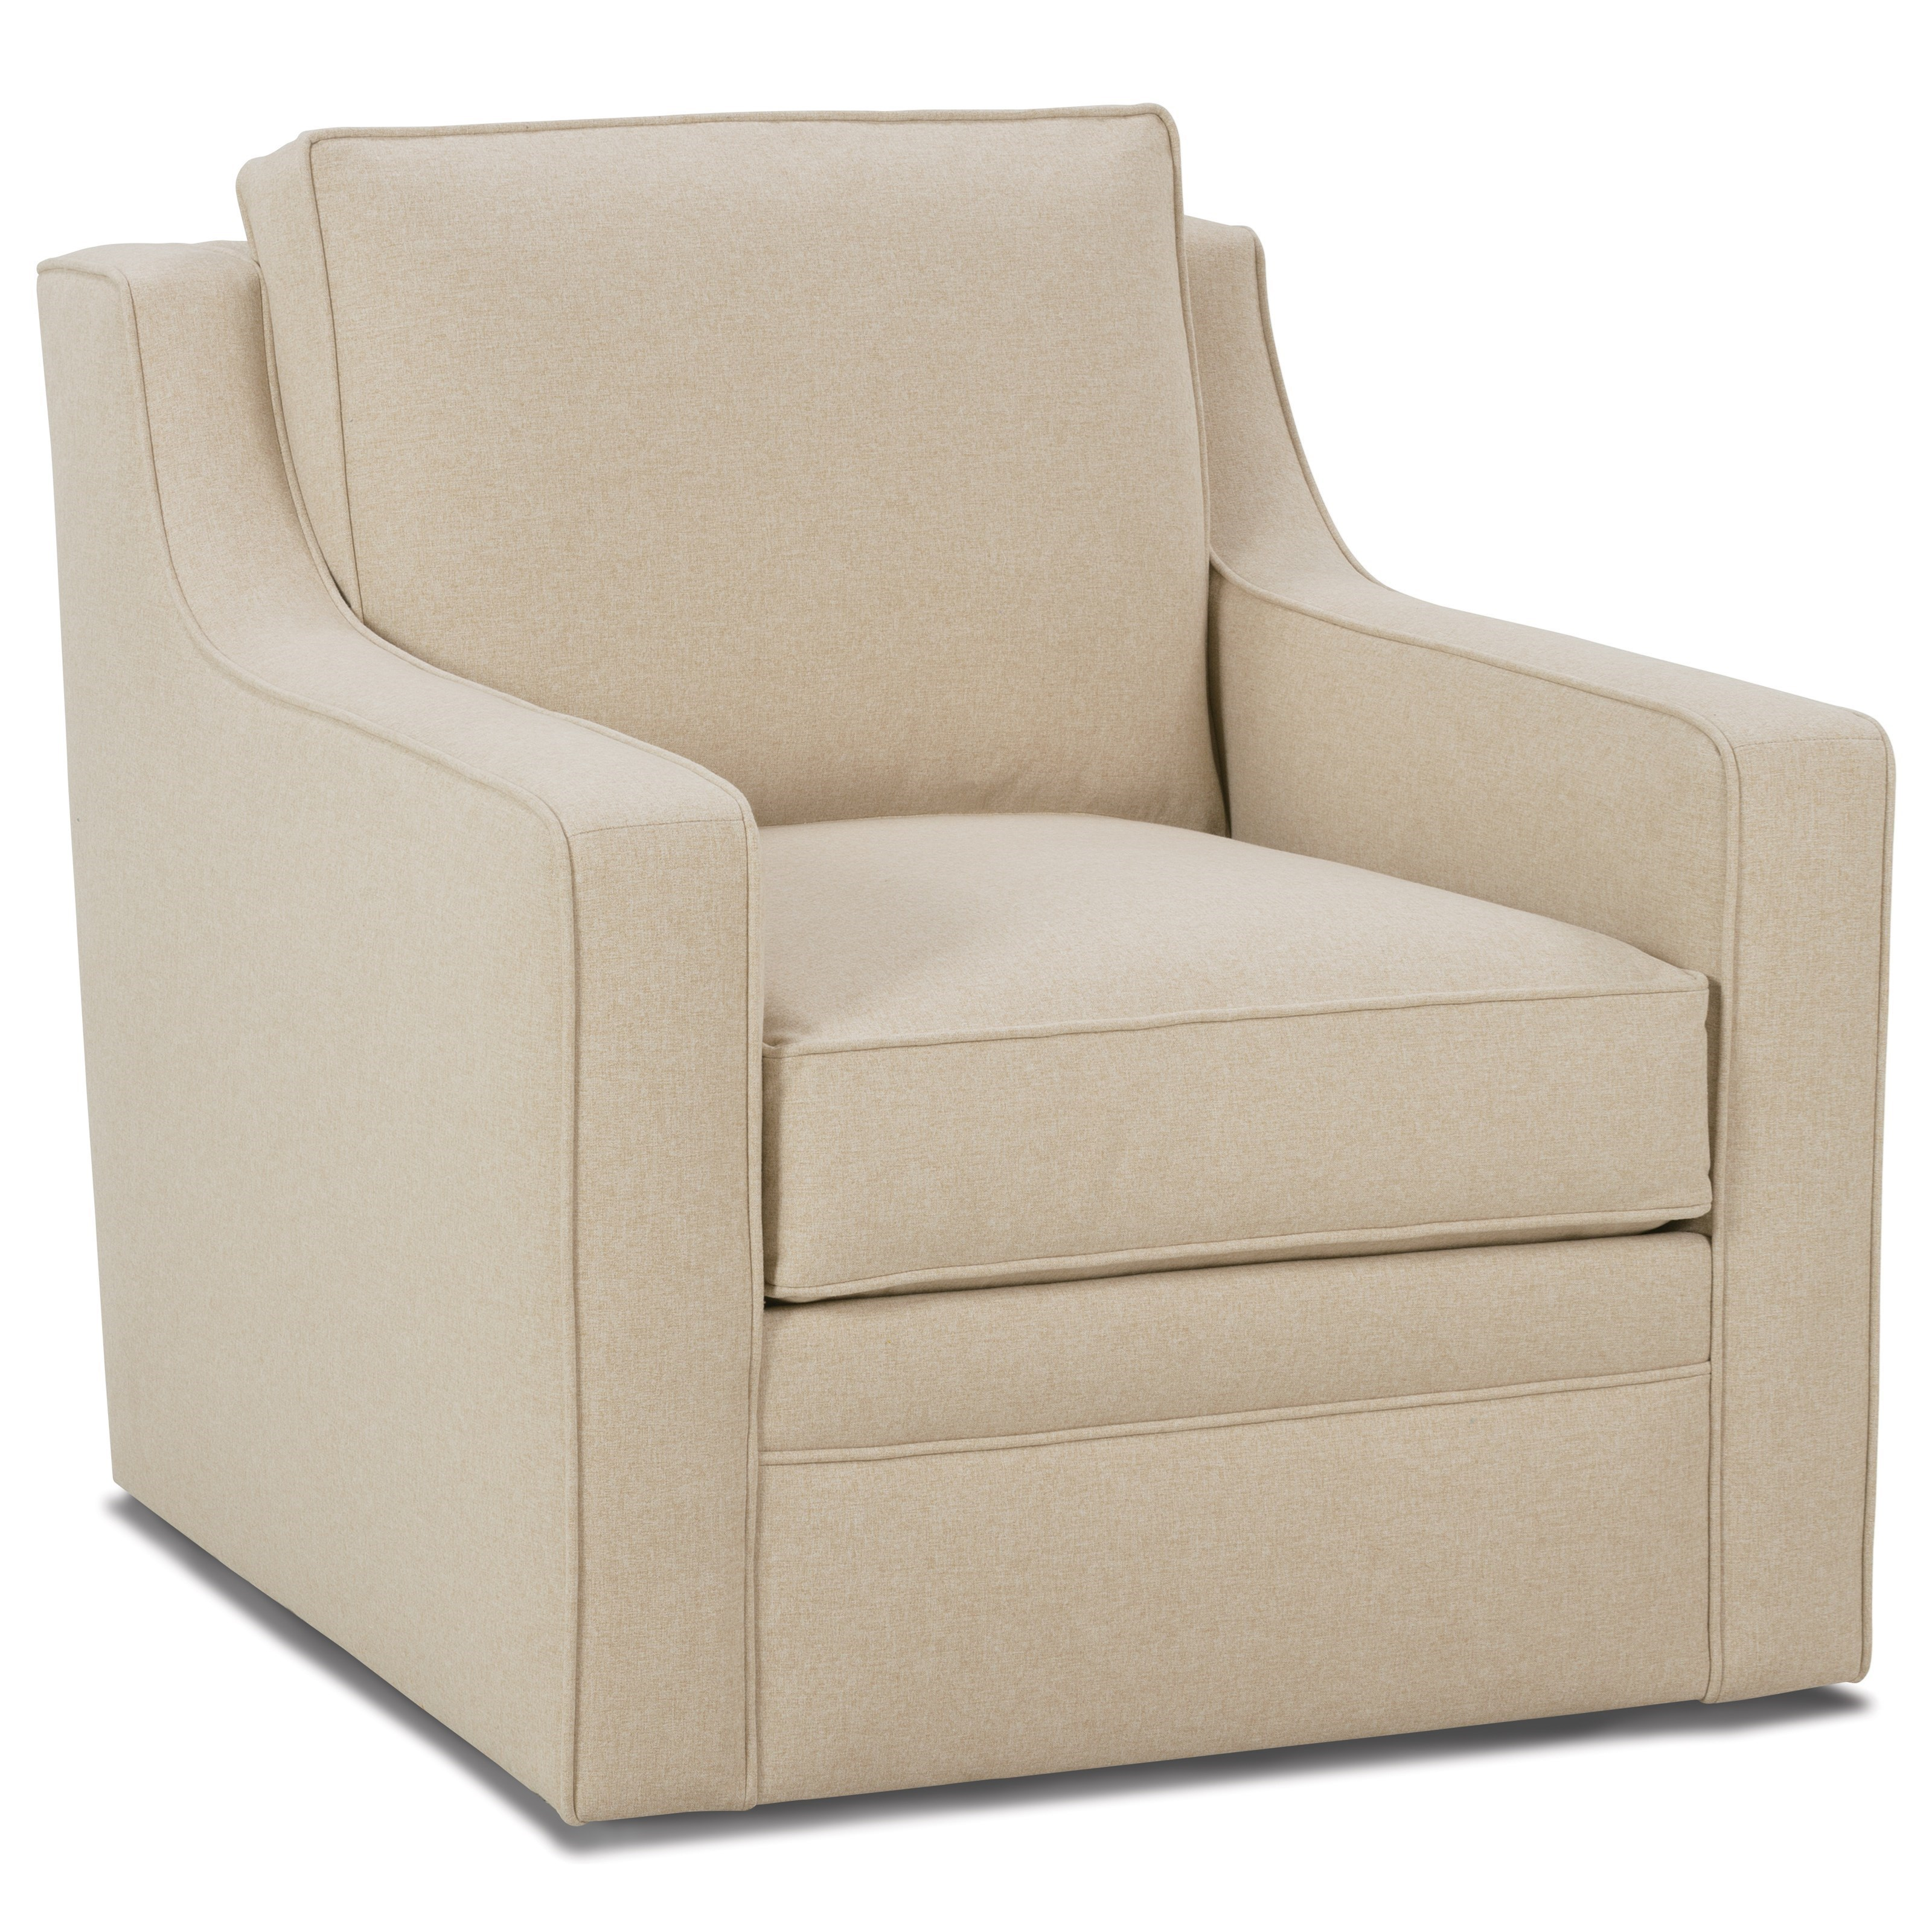 swivel upholstered chairs office chair under 30 rowe fuller transitional belfort furniture